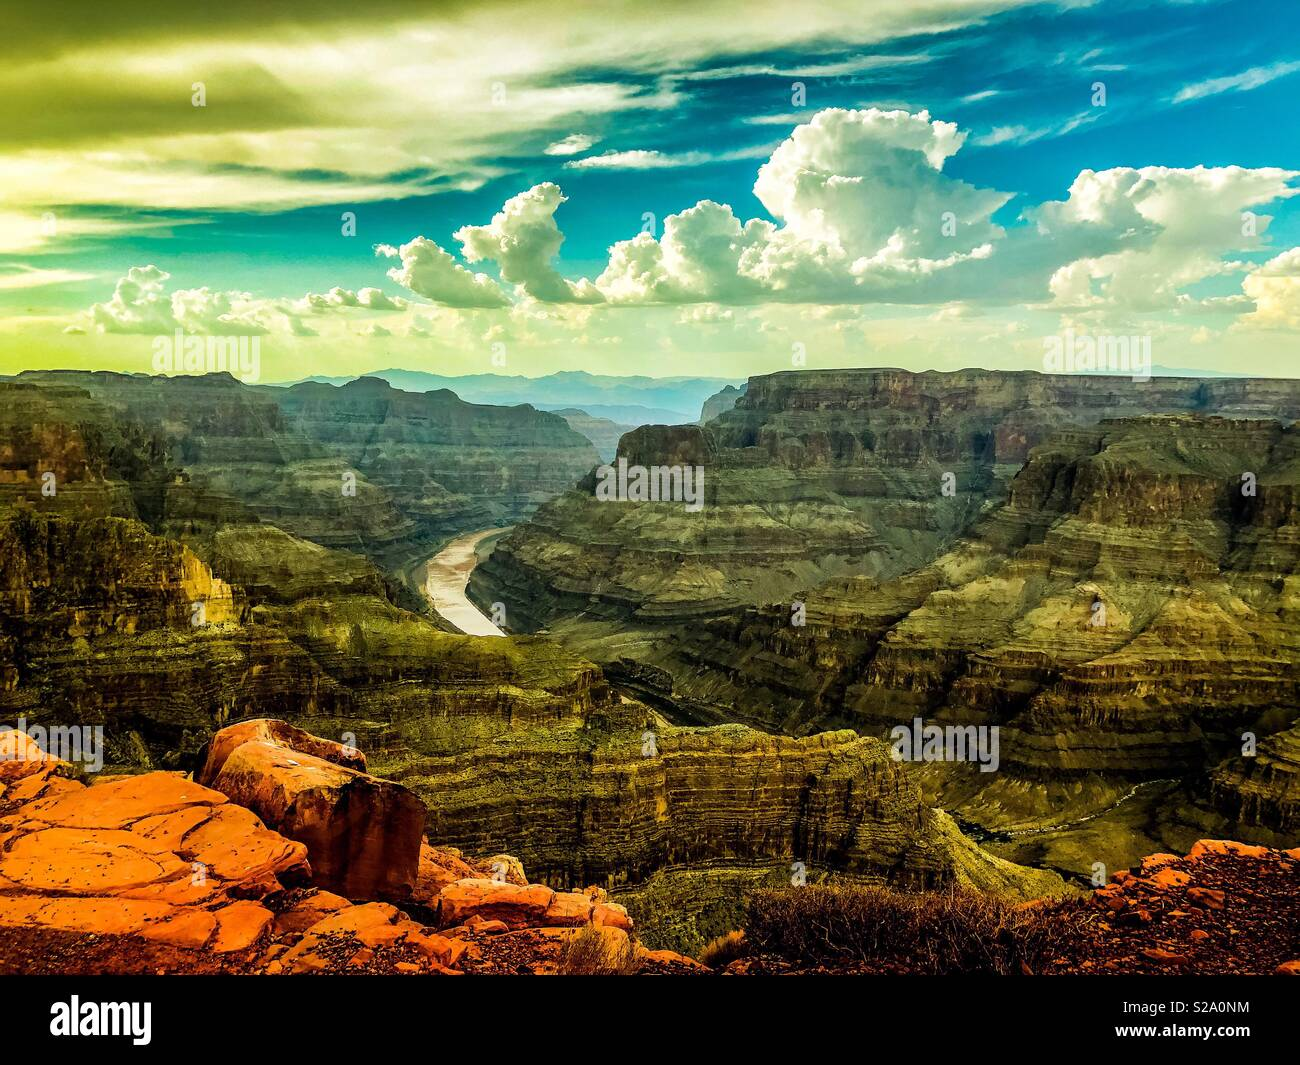 Picturesque Grand Canyon - Stock Image